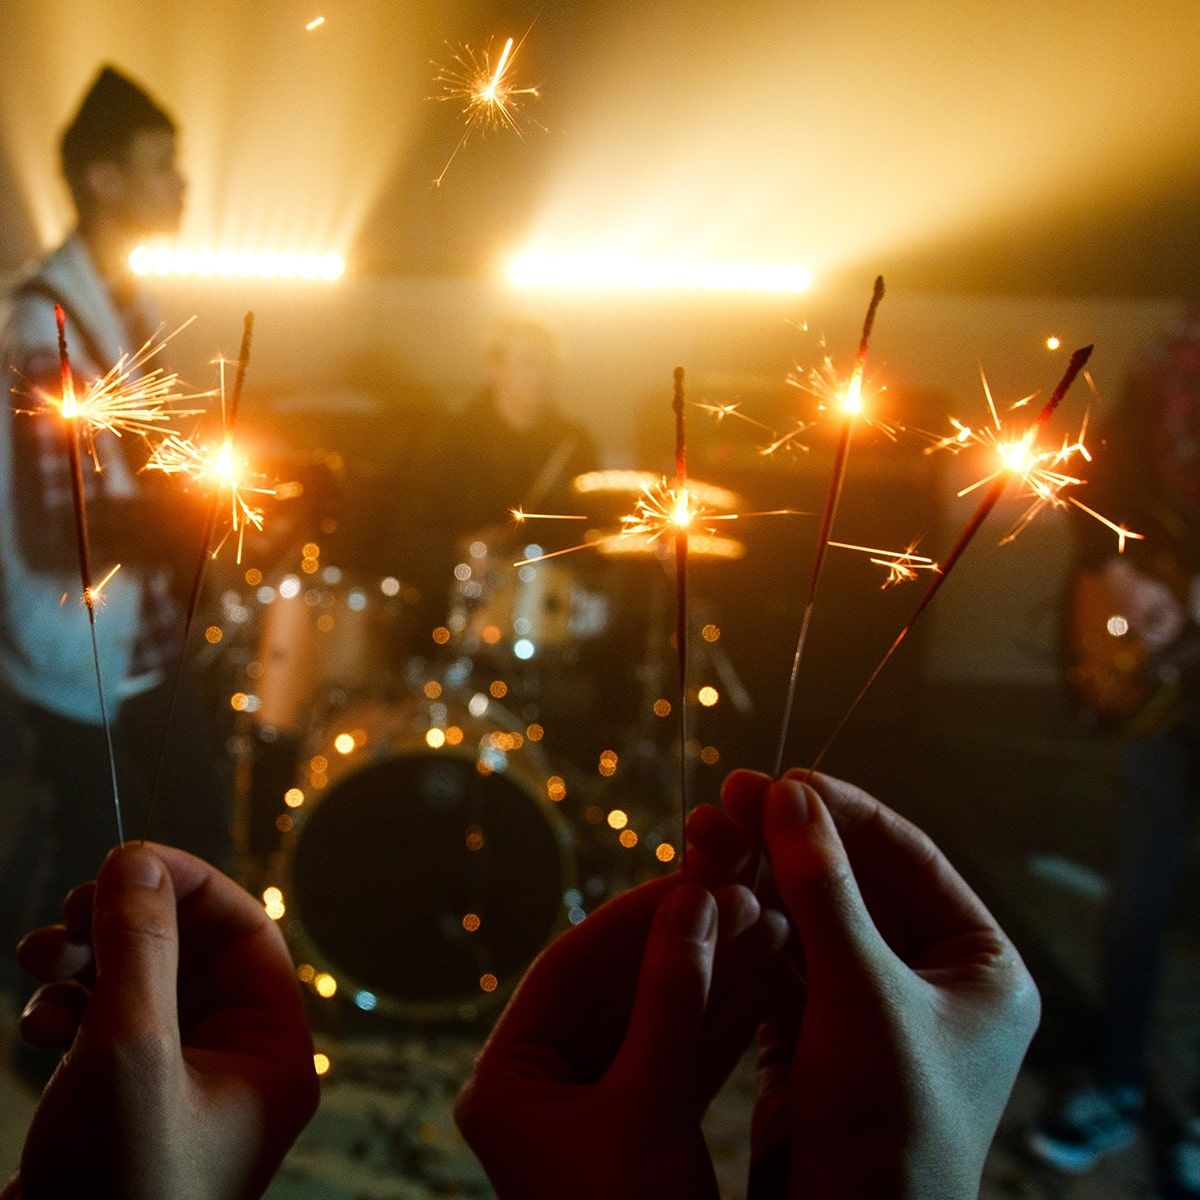 Image of People Using Sparklers at a Live Music Event